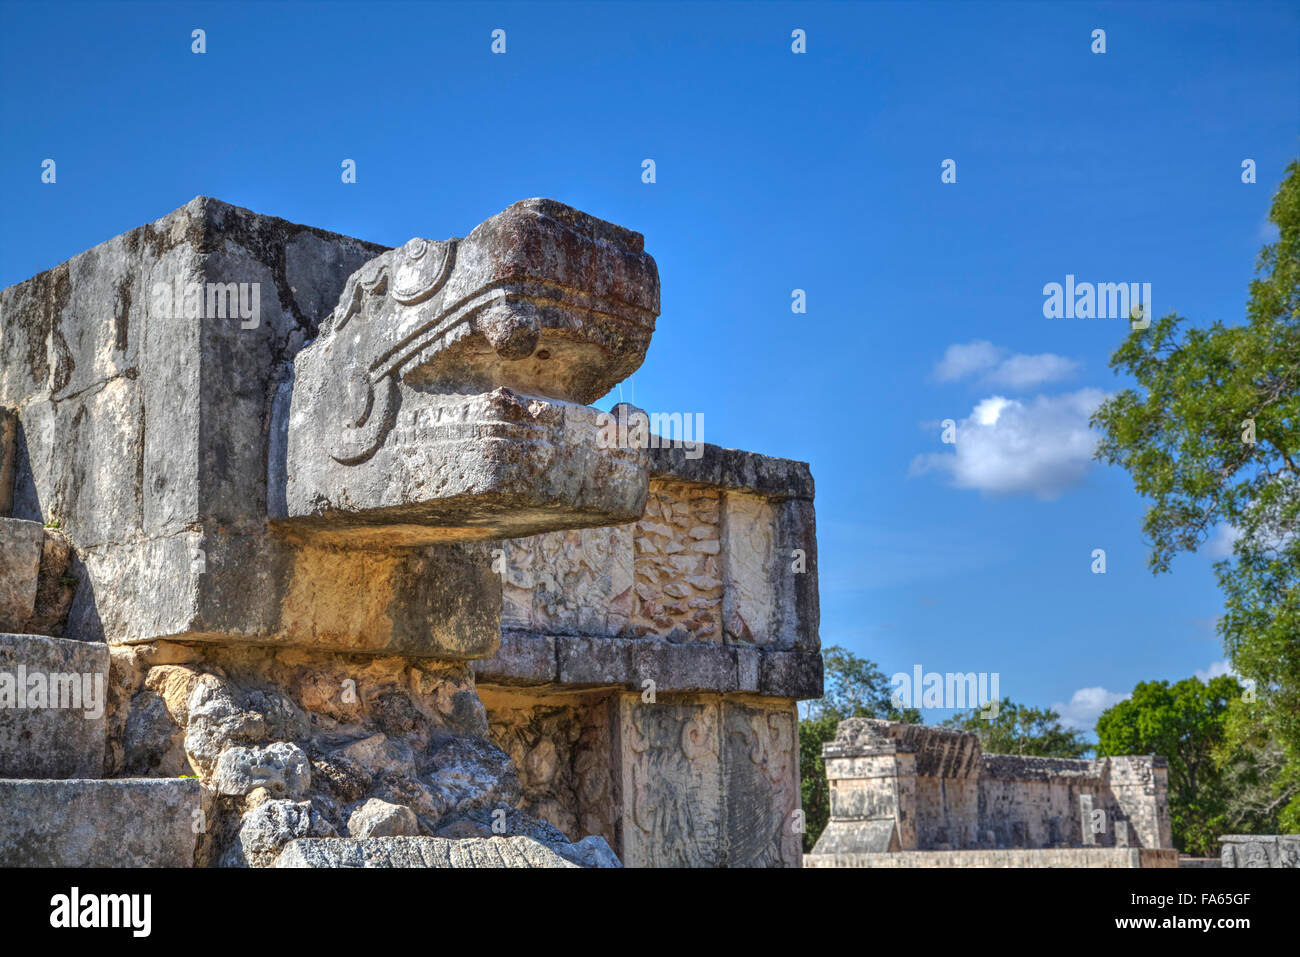 Platform of the Eagles and Jaguars, Chichen Itza, UNESCO World Heritage Site, Yucatan, Mexico - Stock Image